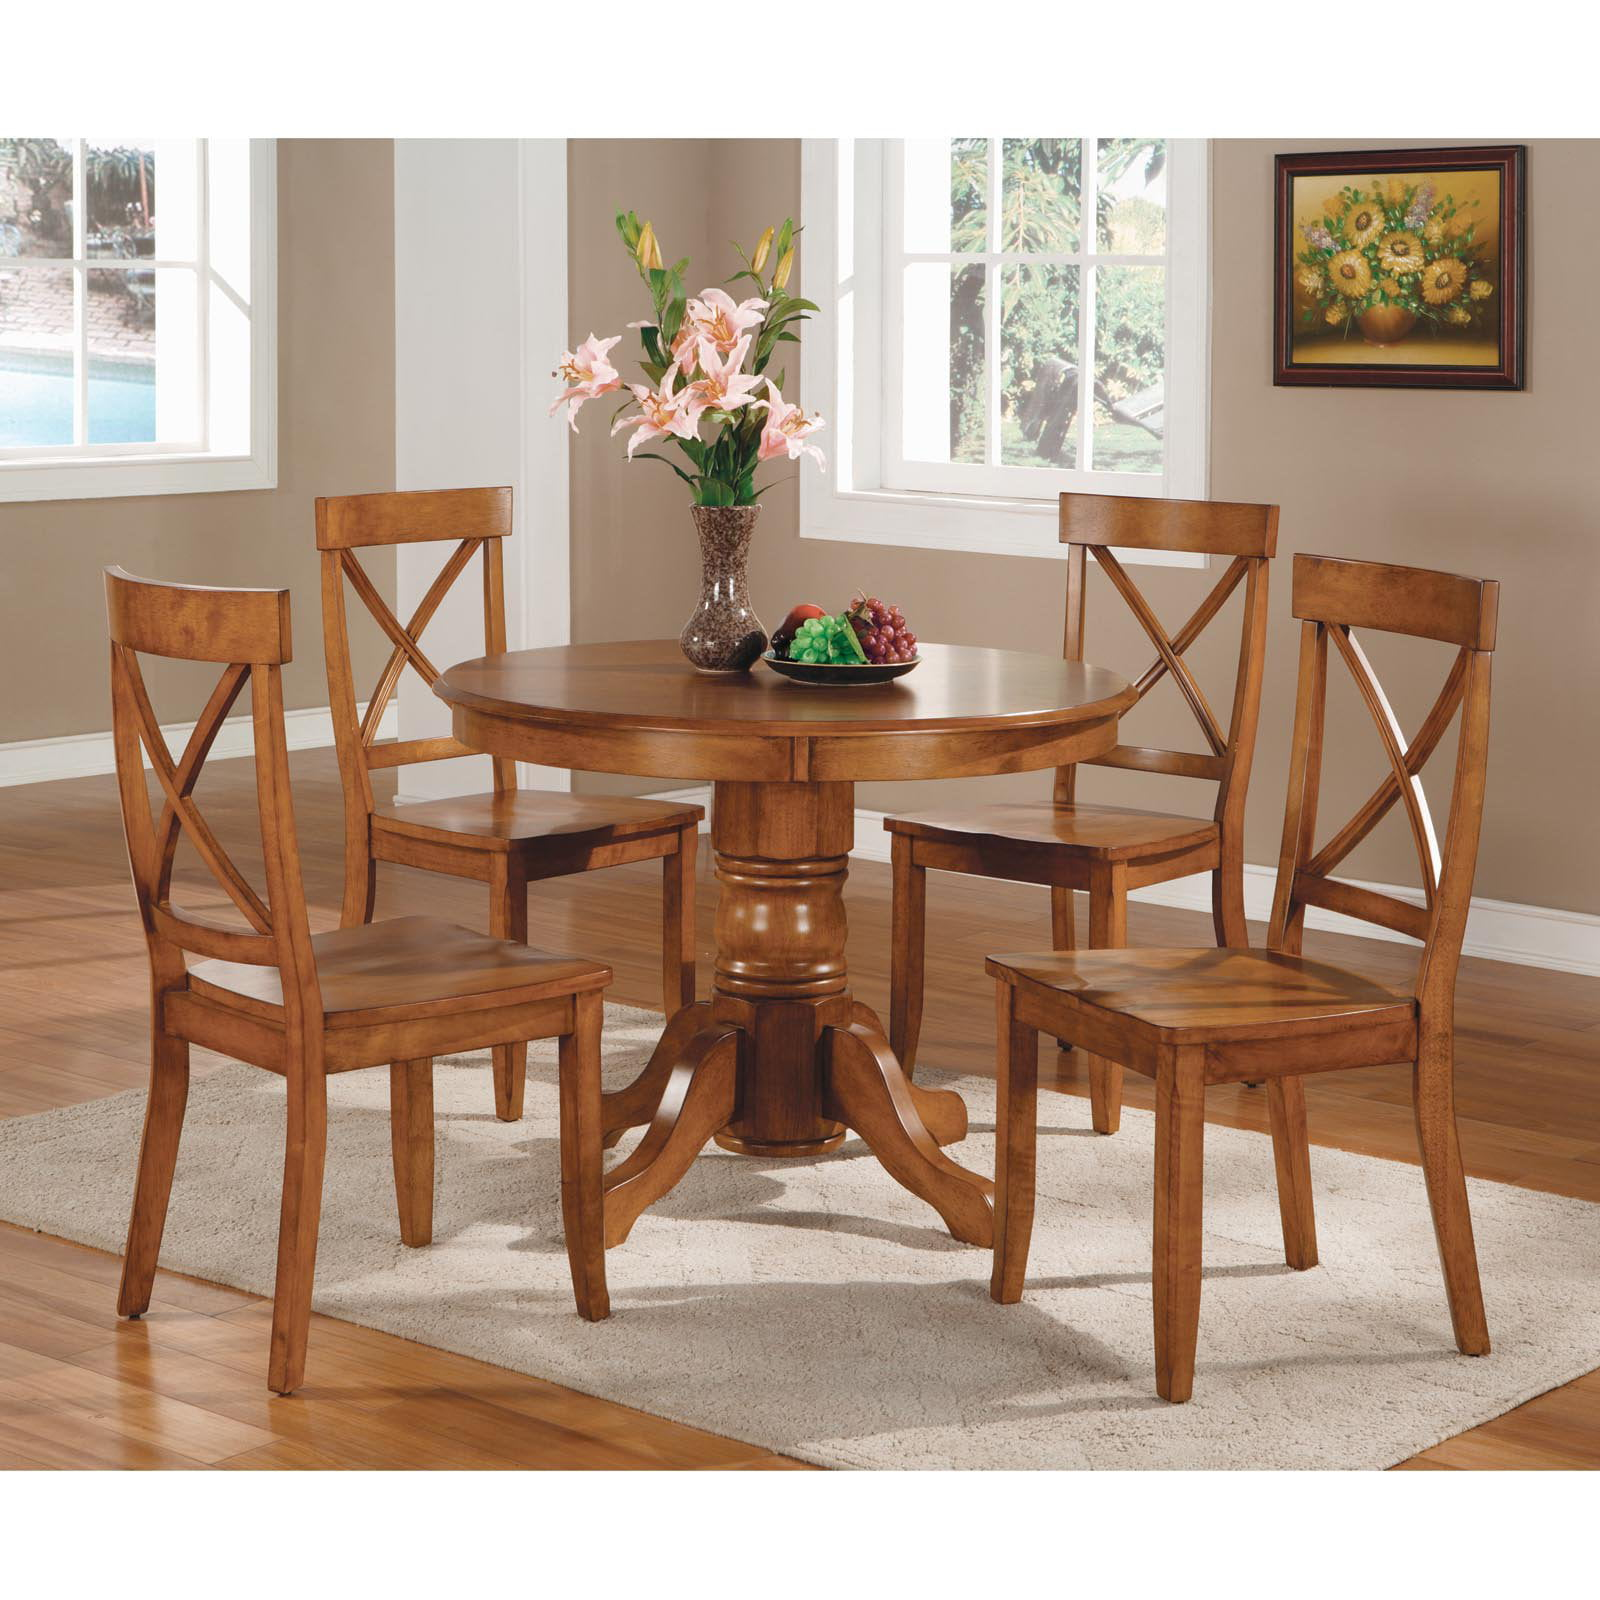 home dining pedestal item modena brands type detail tables horiz carrera double lexington table items kitchen rs